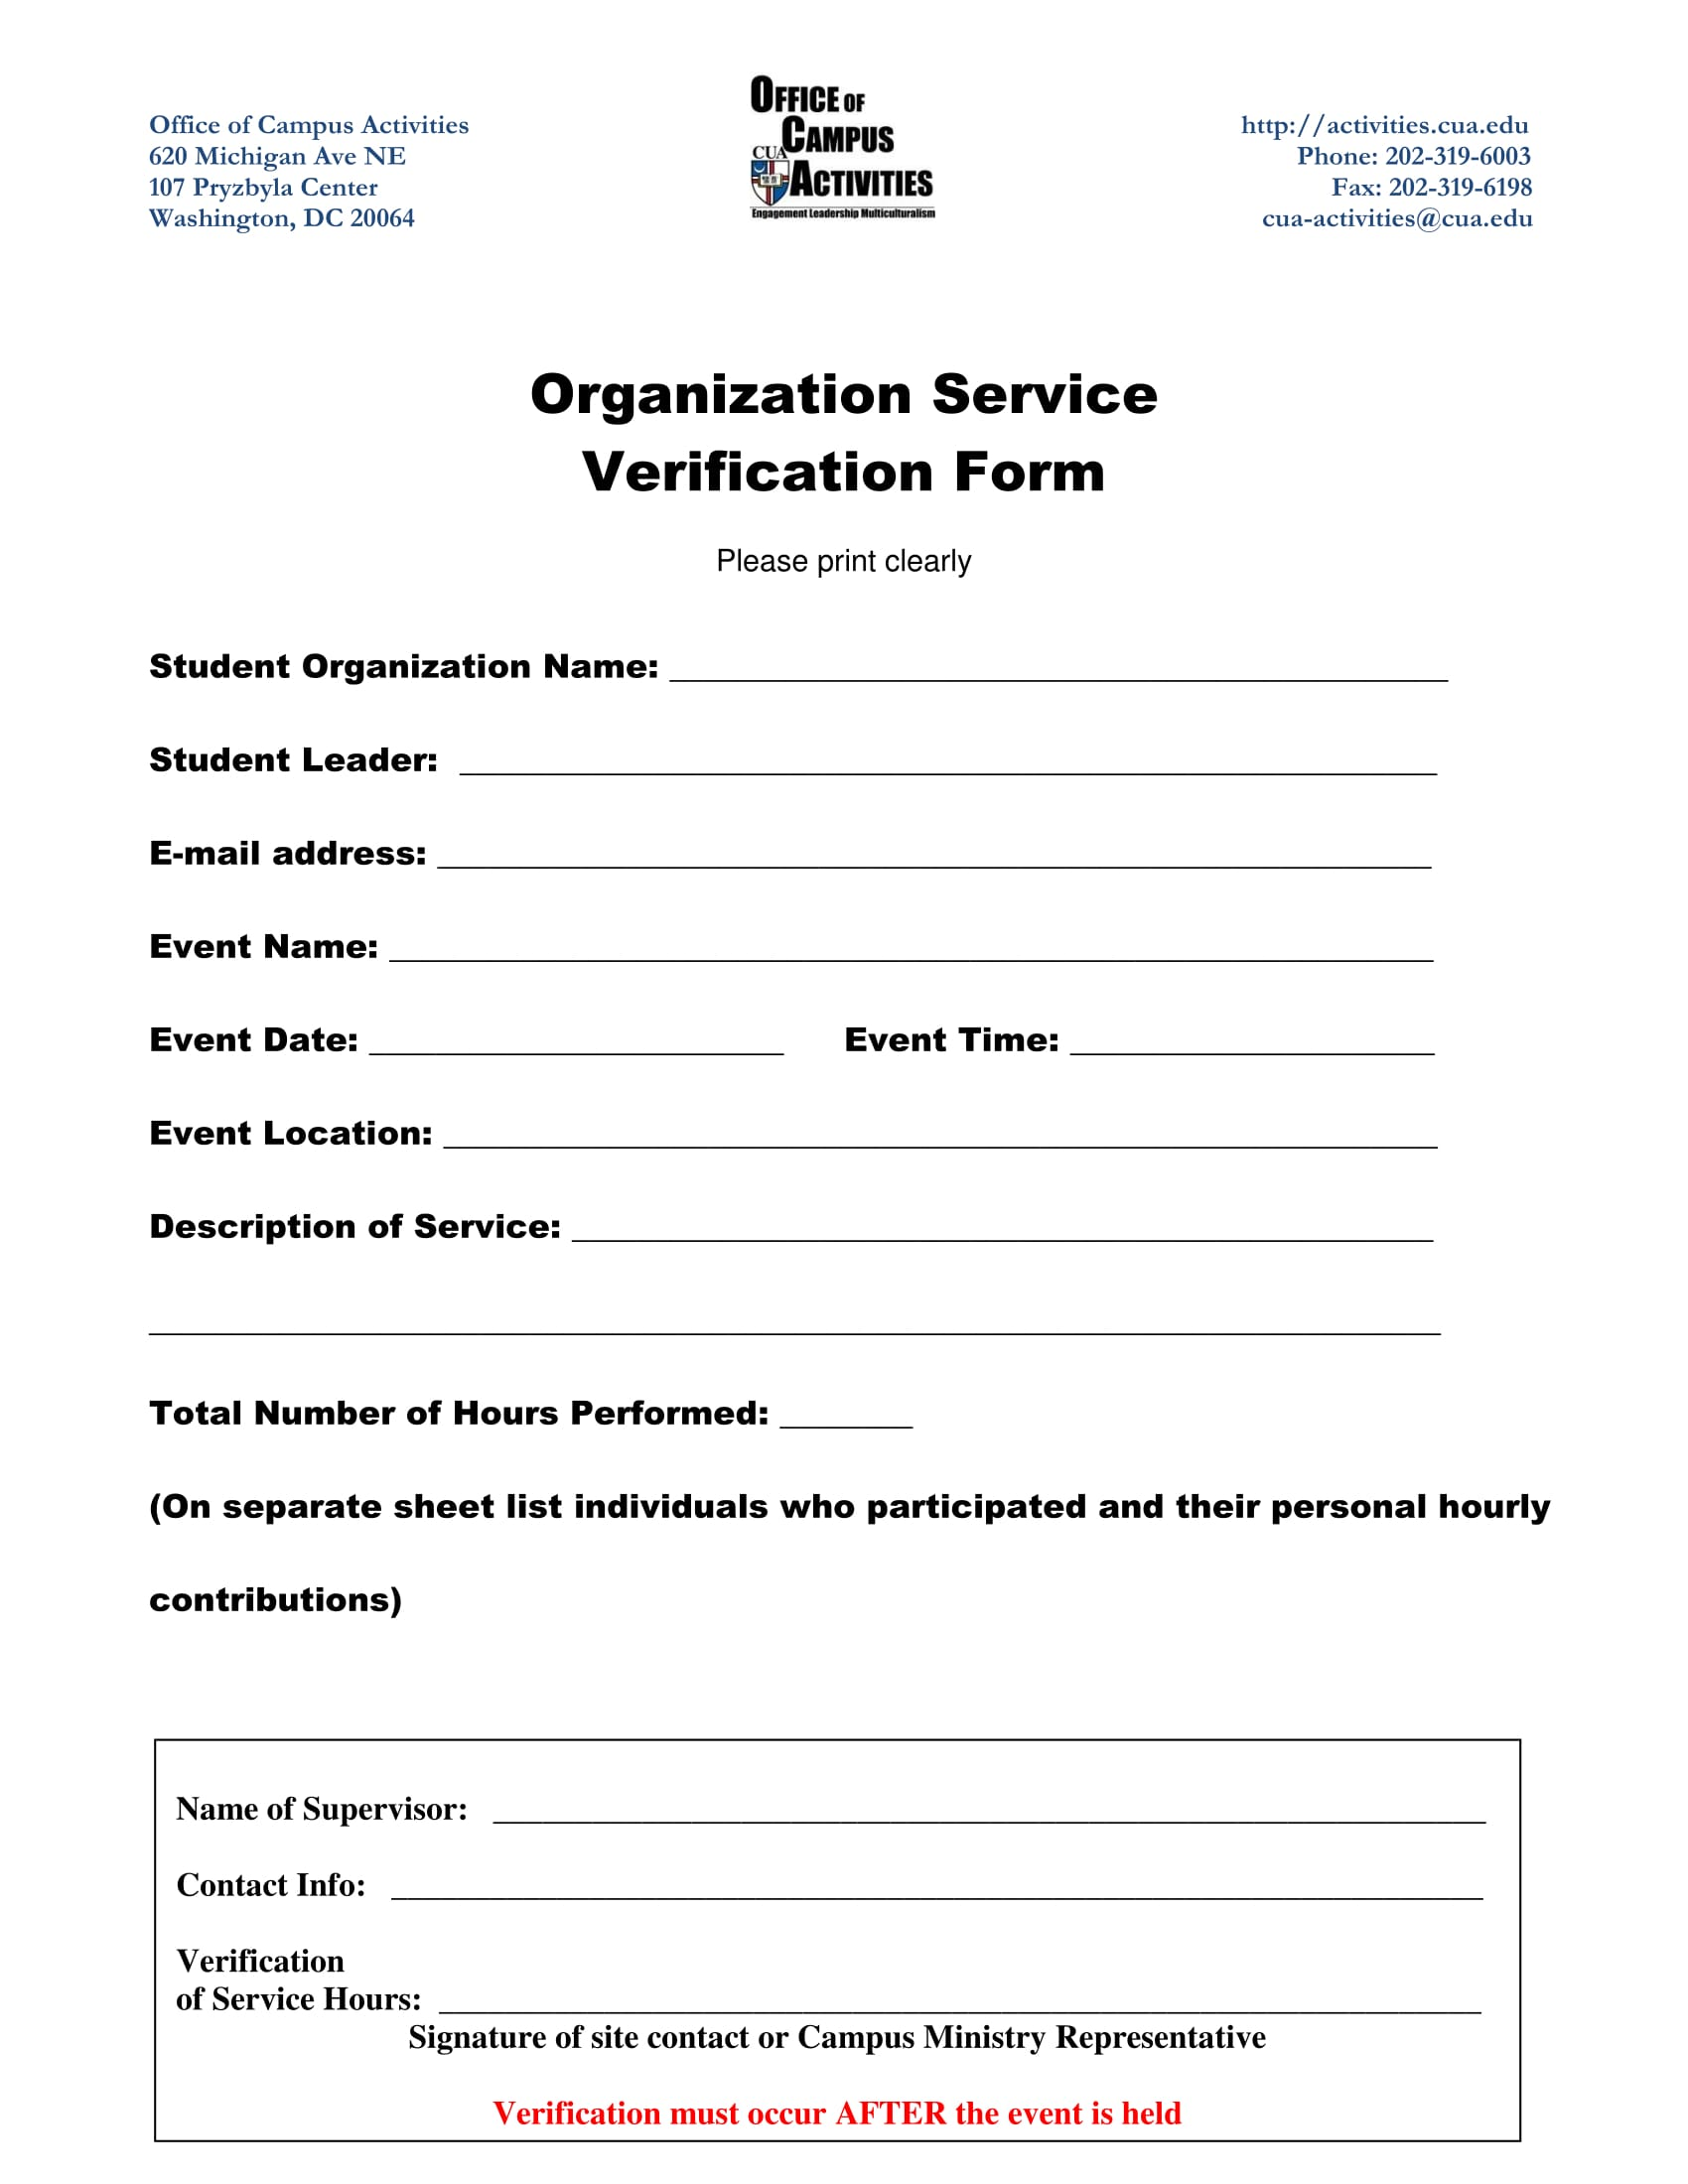 organization service verification form 1